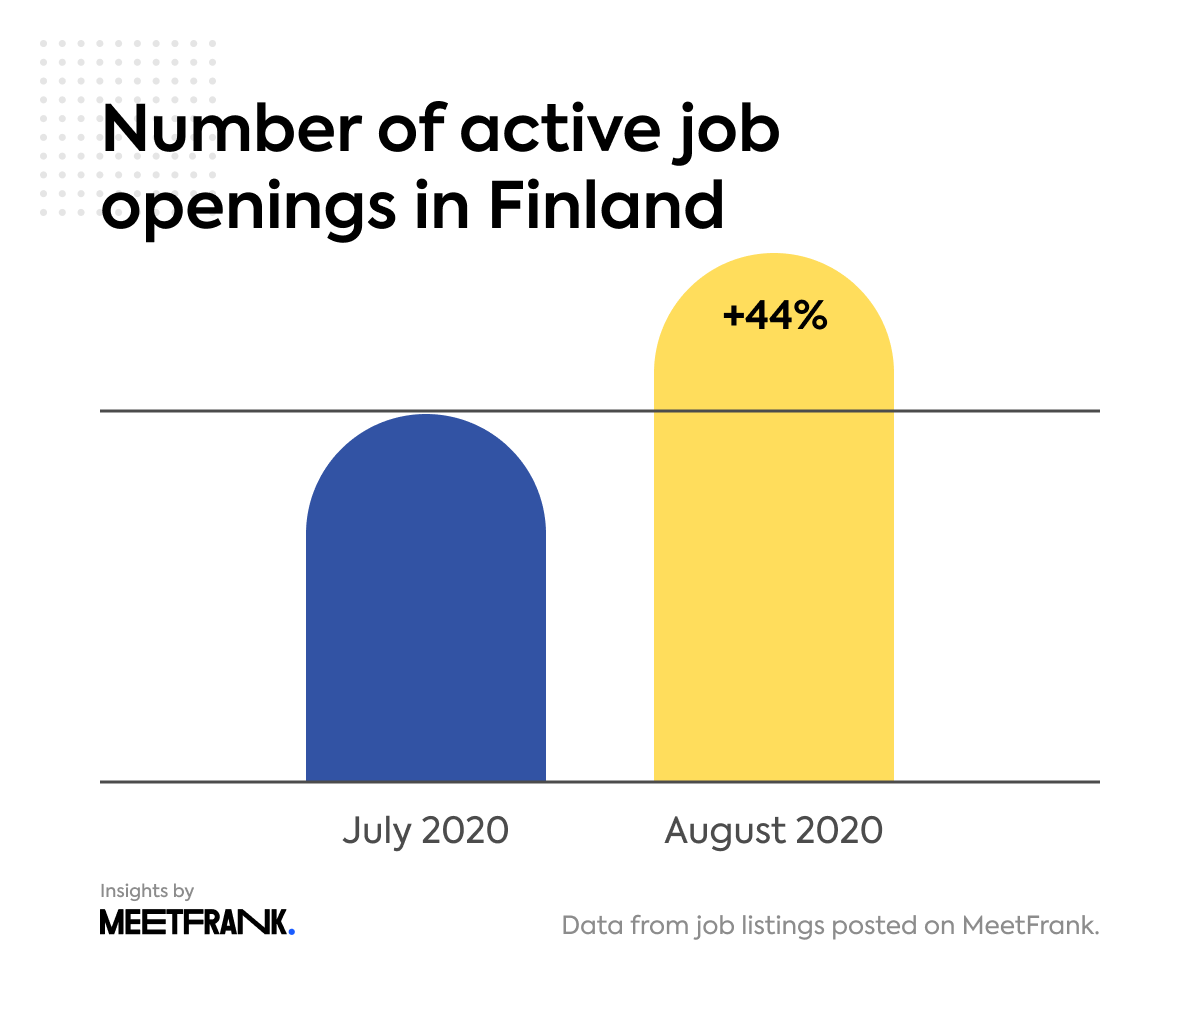 number of active job openings in Finland in August